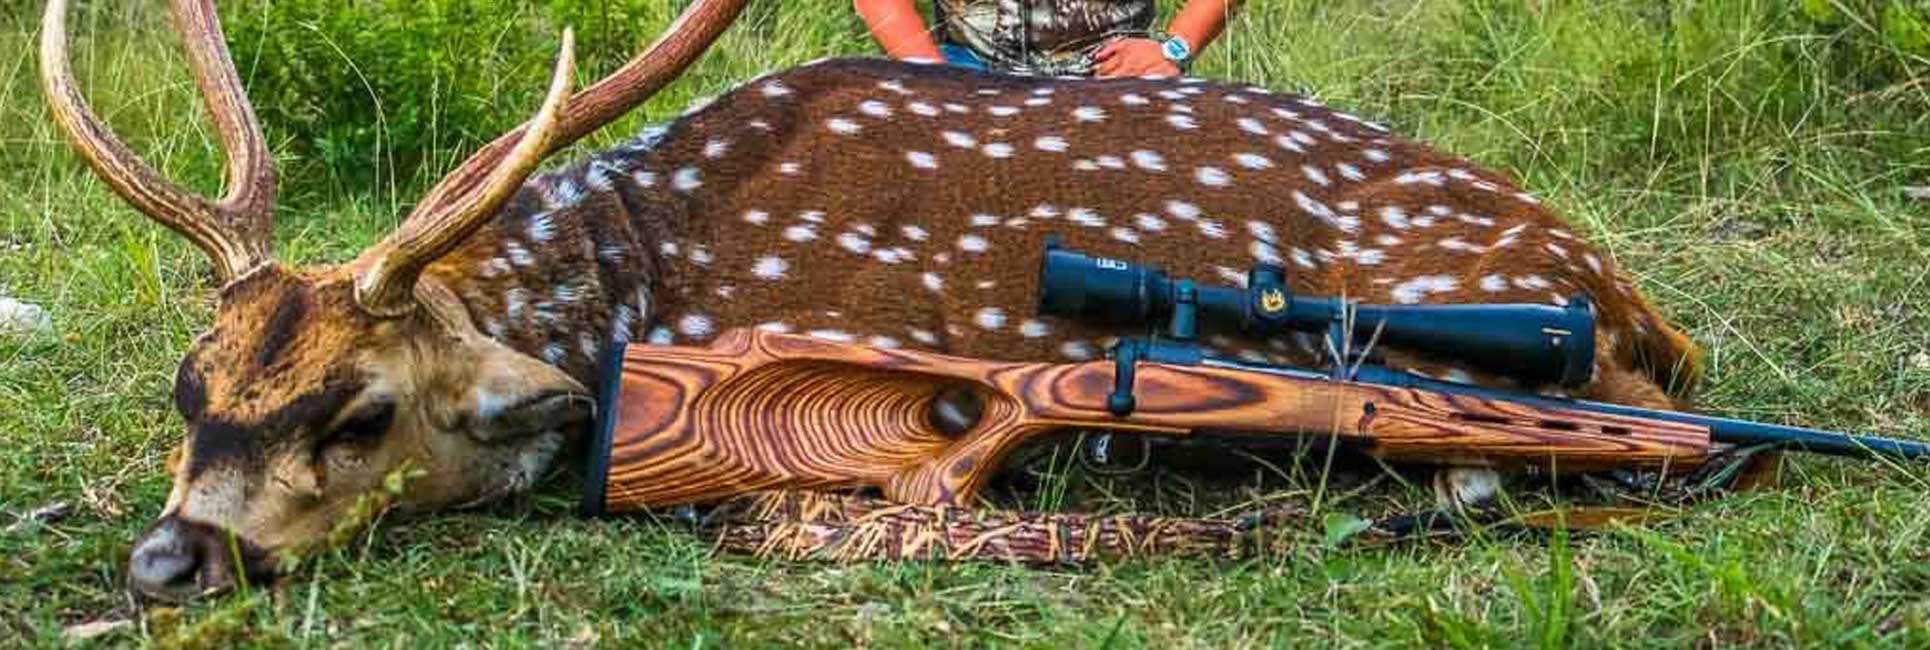 axis deer shot with rifle while axis deer hunting